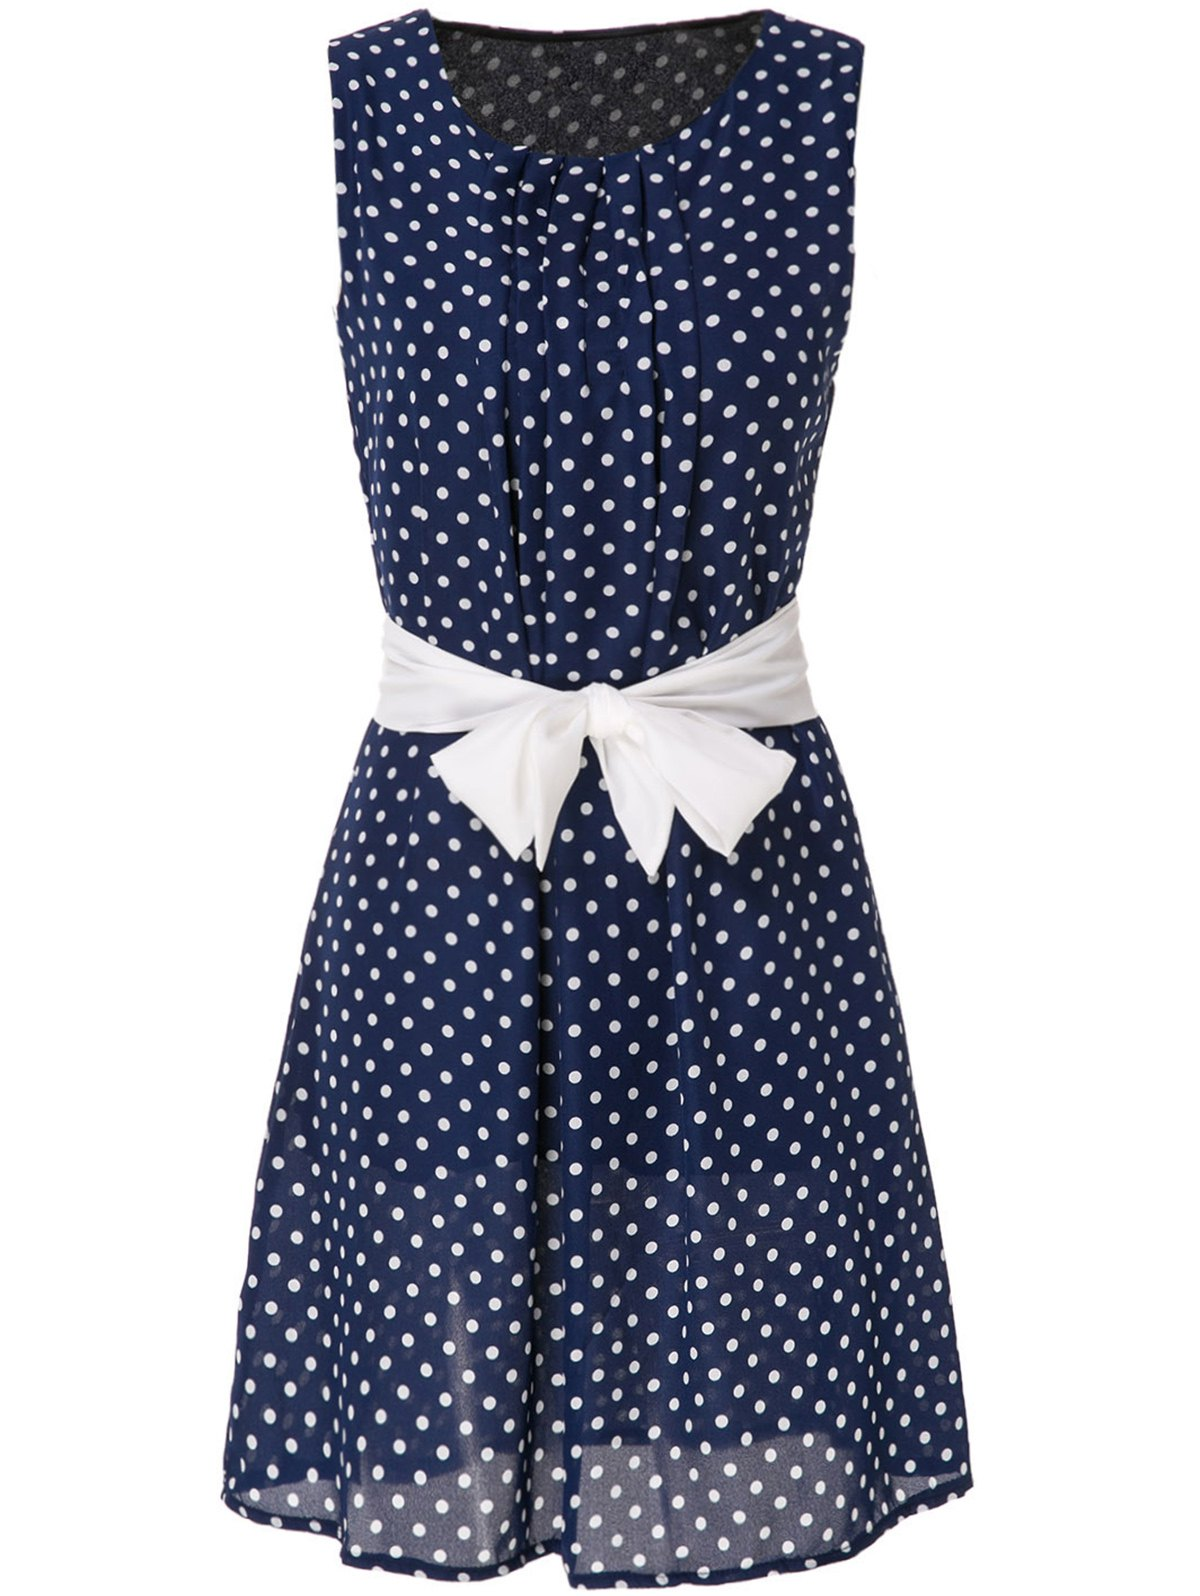 Sweet Polka Dot Print Scoop Neck Sleeveless Dress For Women - BLUE S